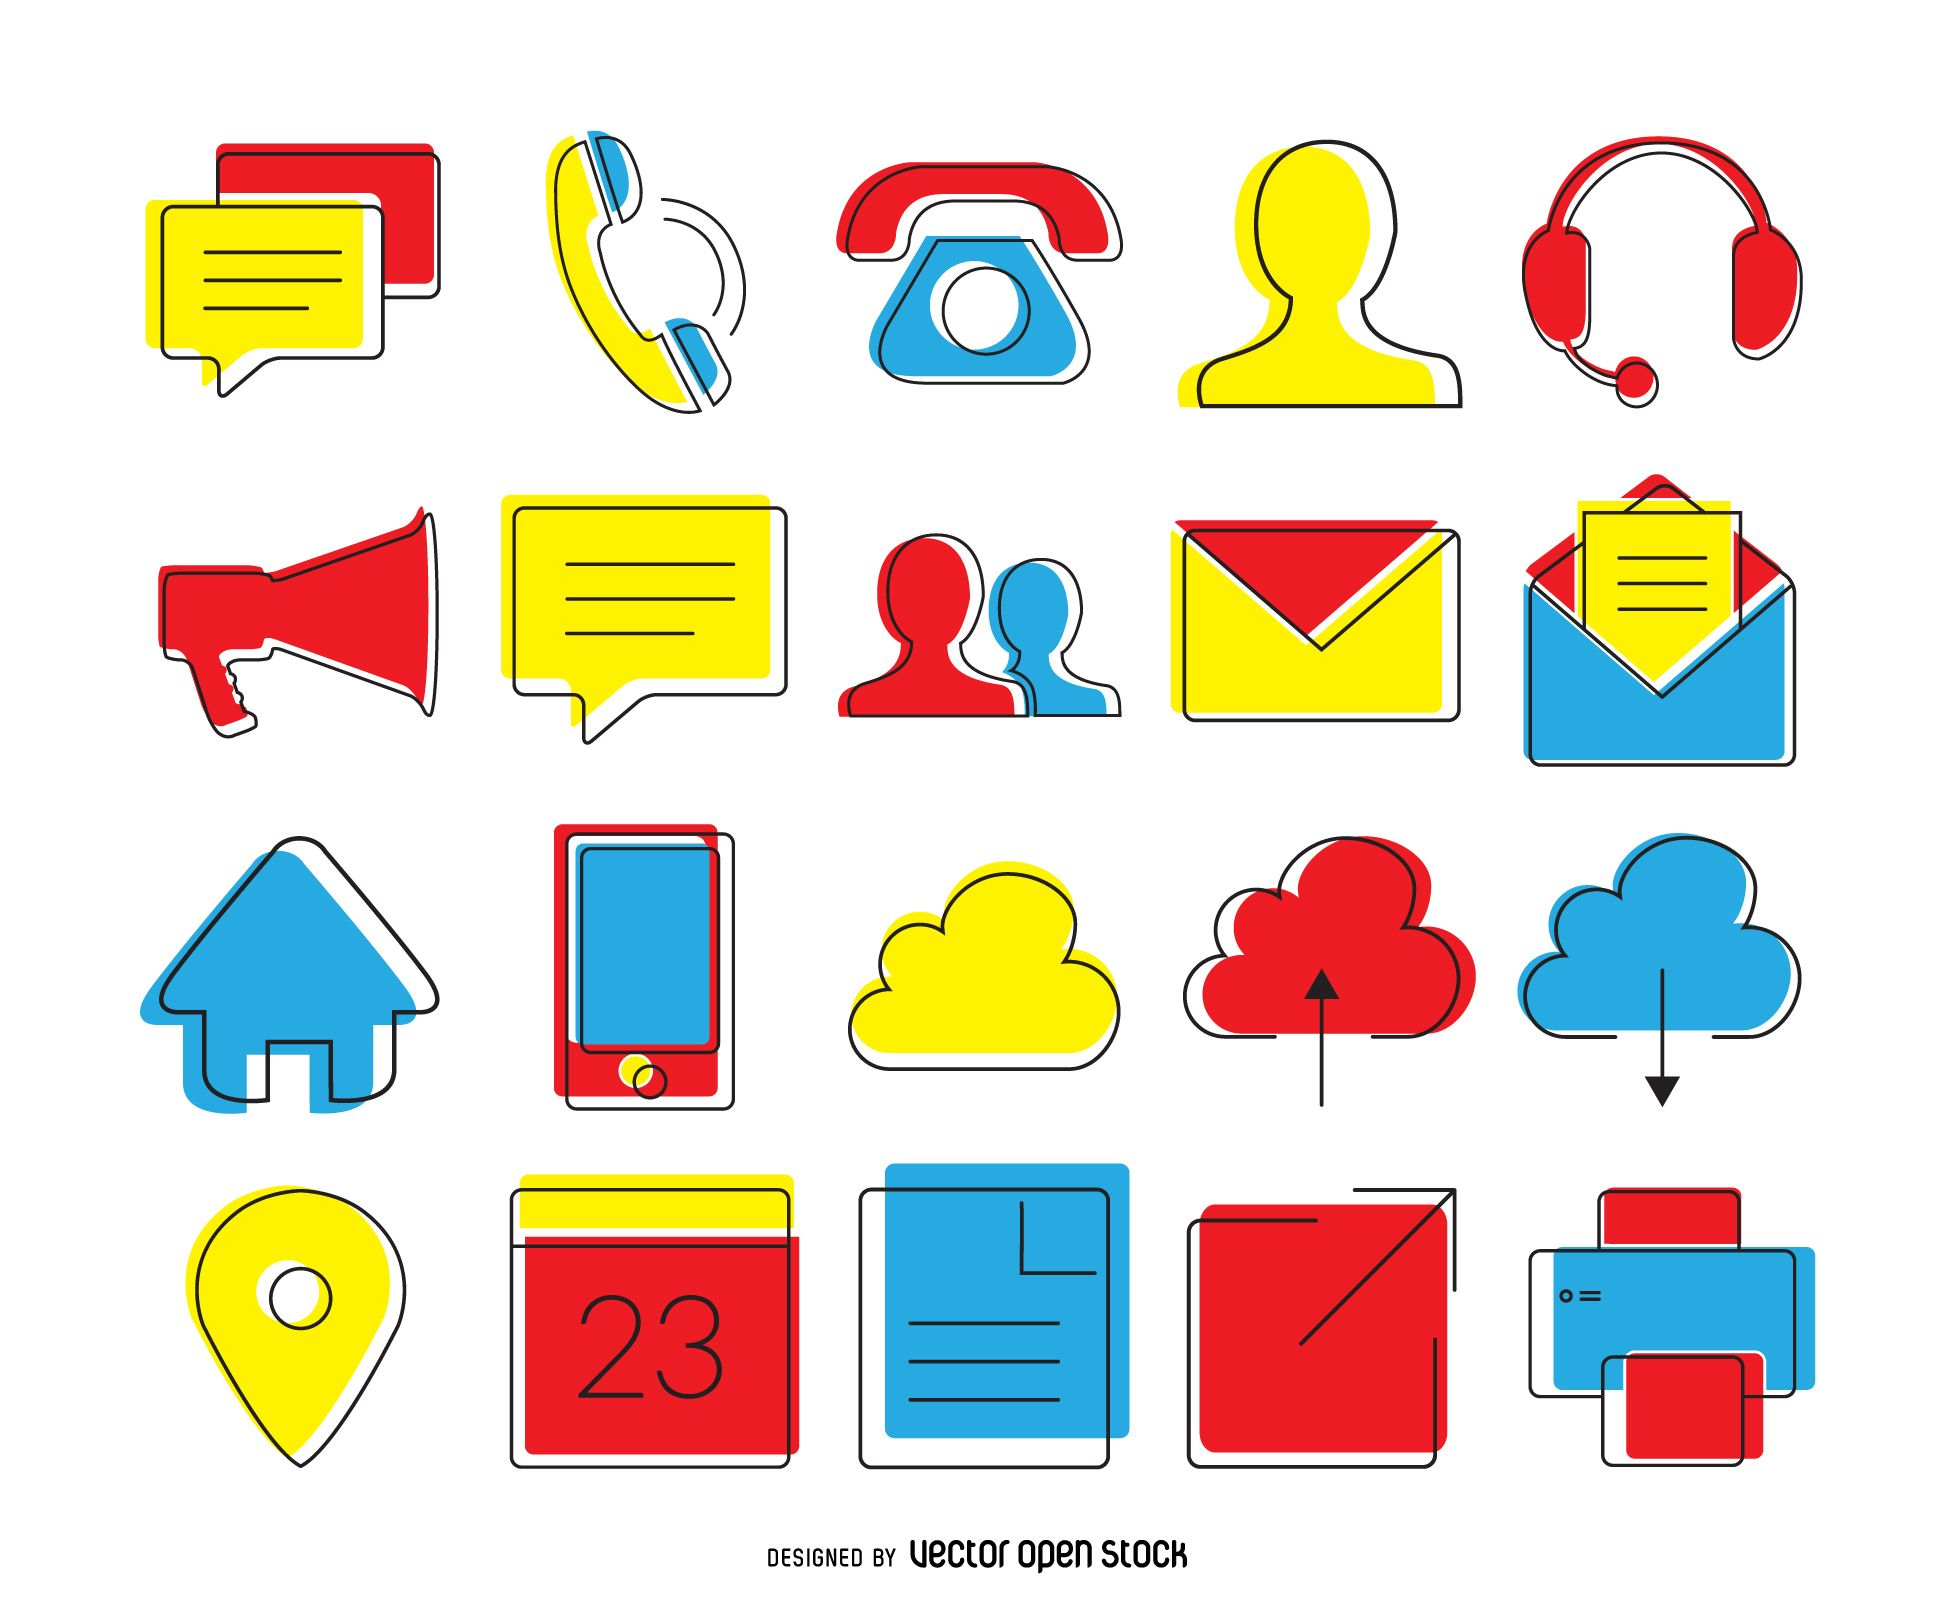 Set of contact icons in bright tones of blue, red and